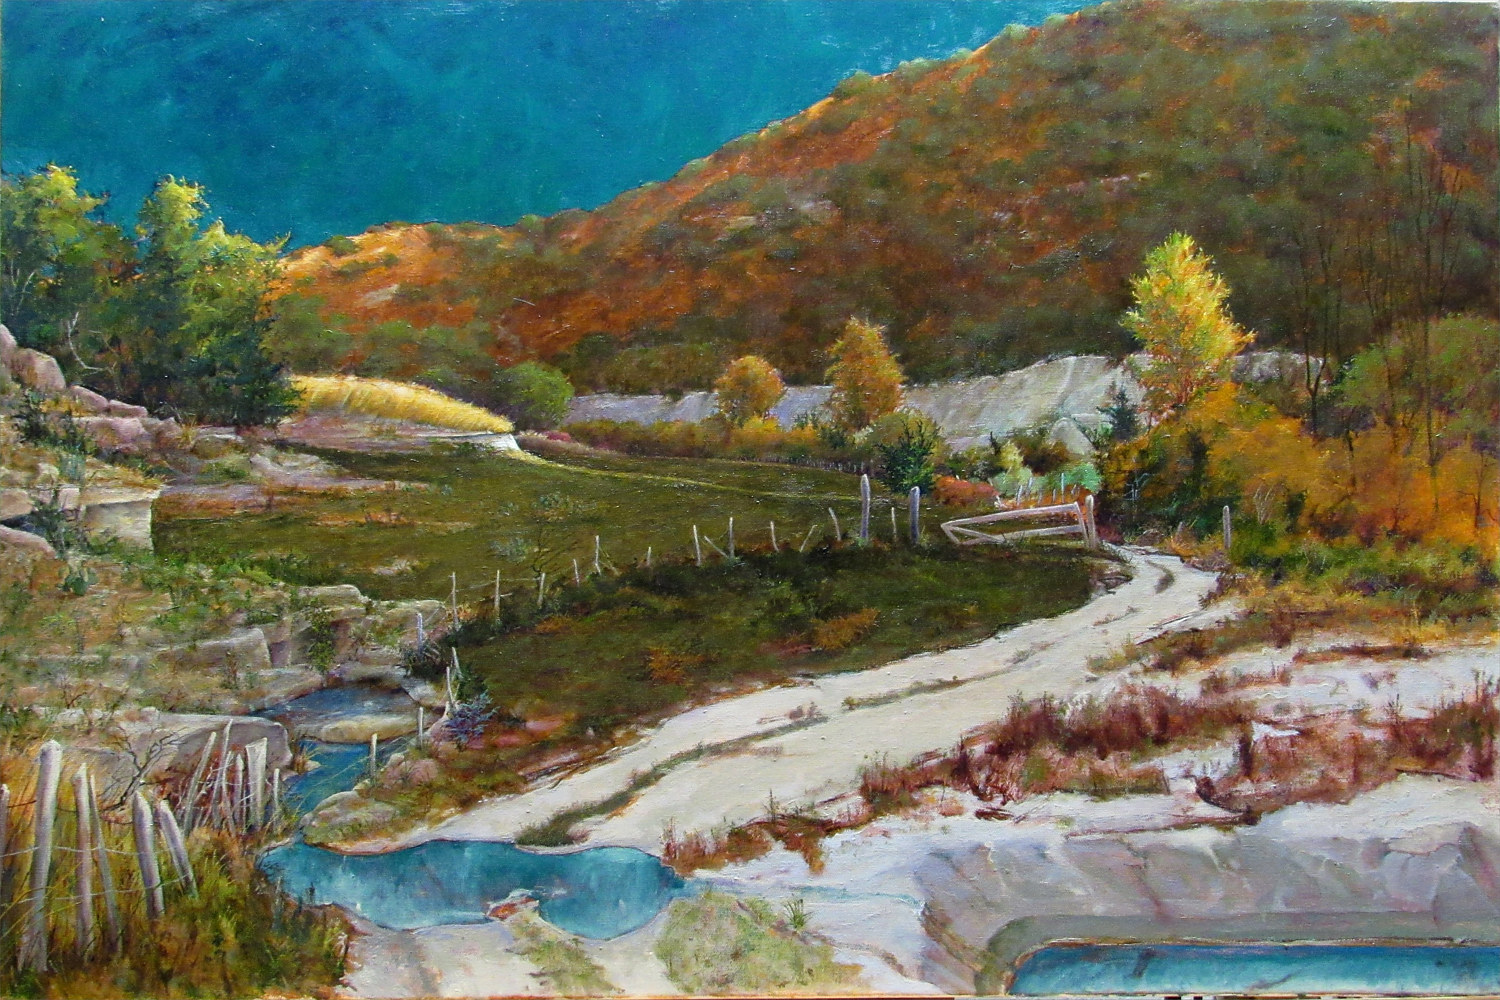 Frio River Trail, 5L Ranch, Lakey, Texas 30x40 by Gary Nowlin